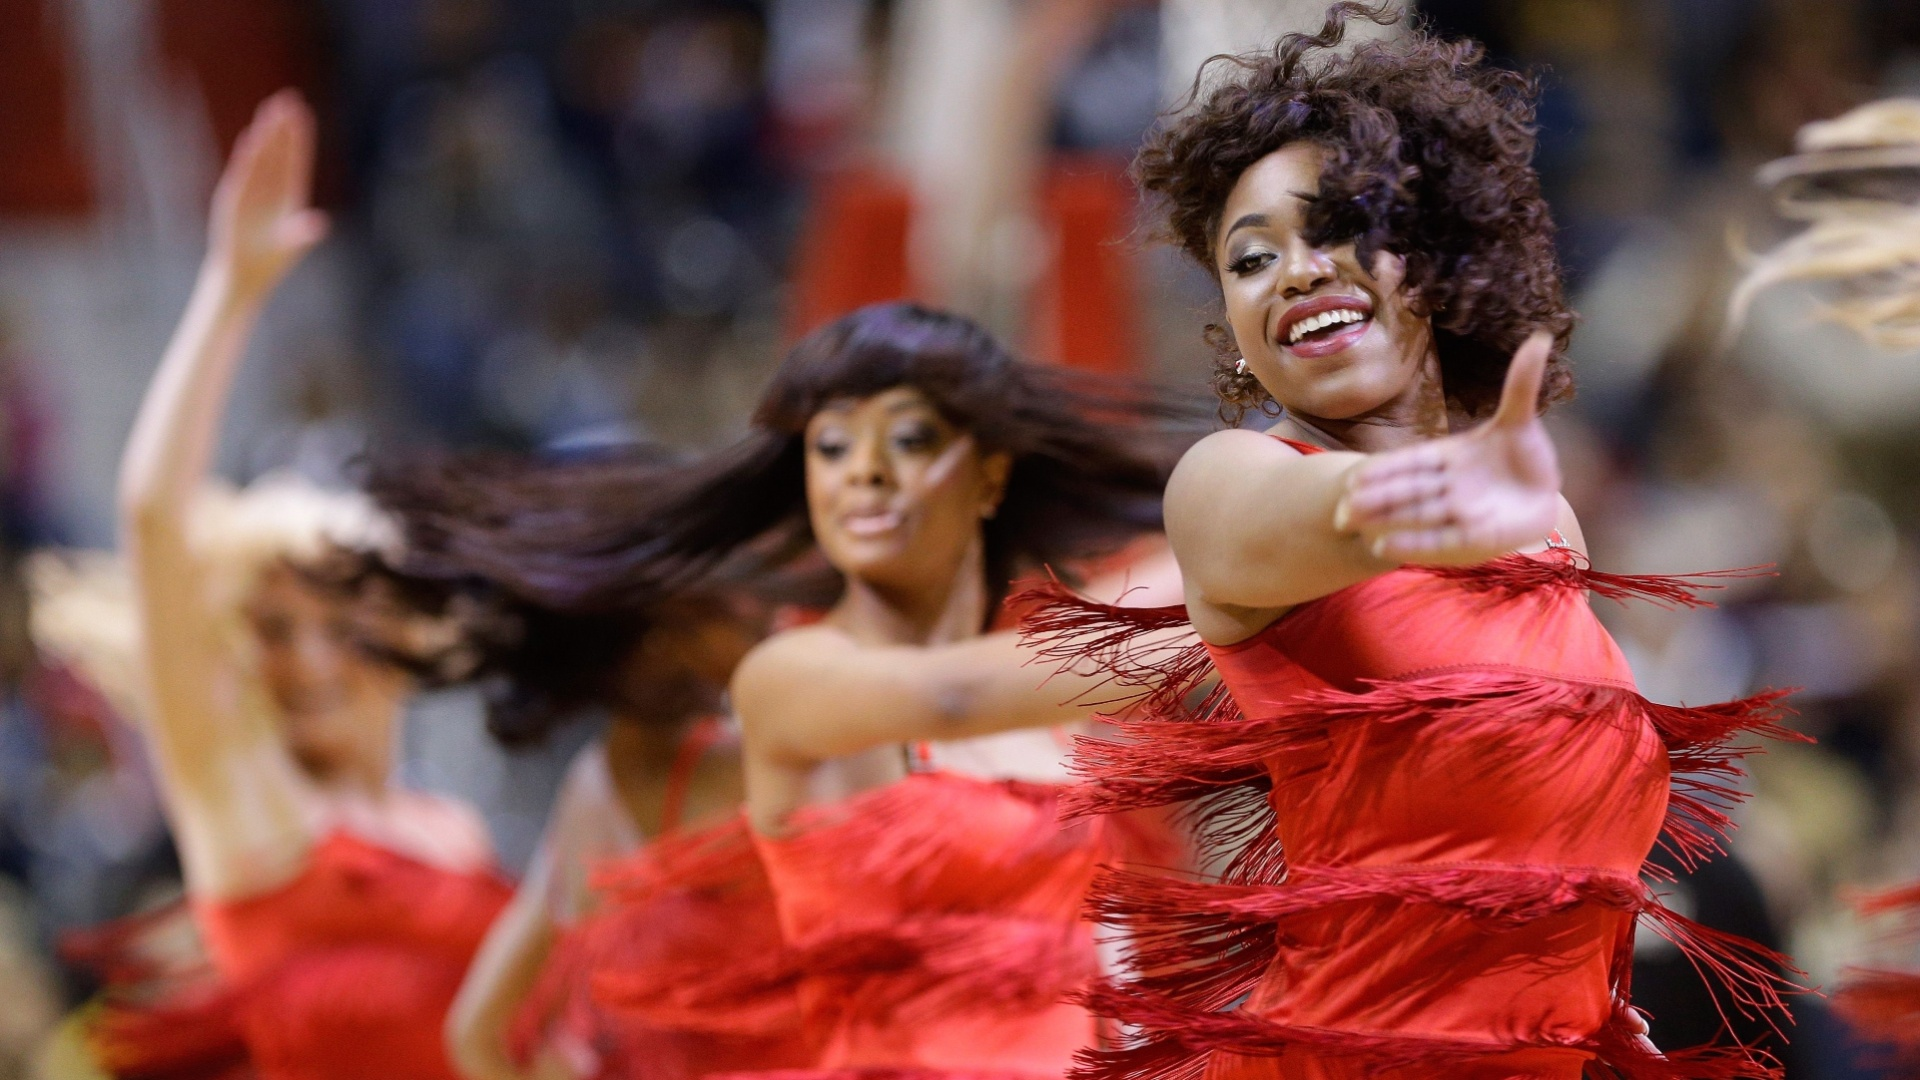 25.jan.2013 - Cheerleaders do Washington Wizards fazem seu número durante intervalo do jogo contra o Minnesota Timberwolves